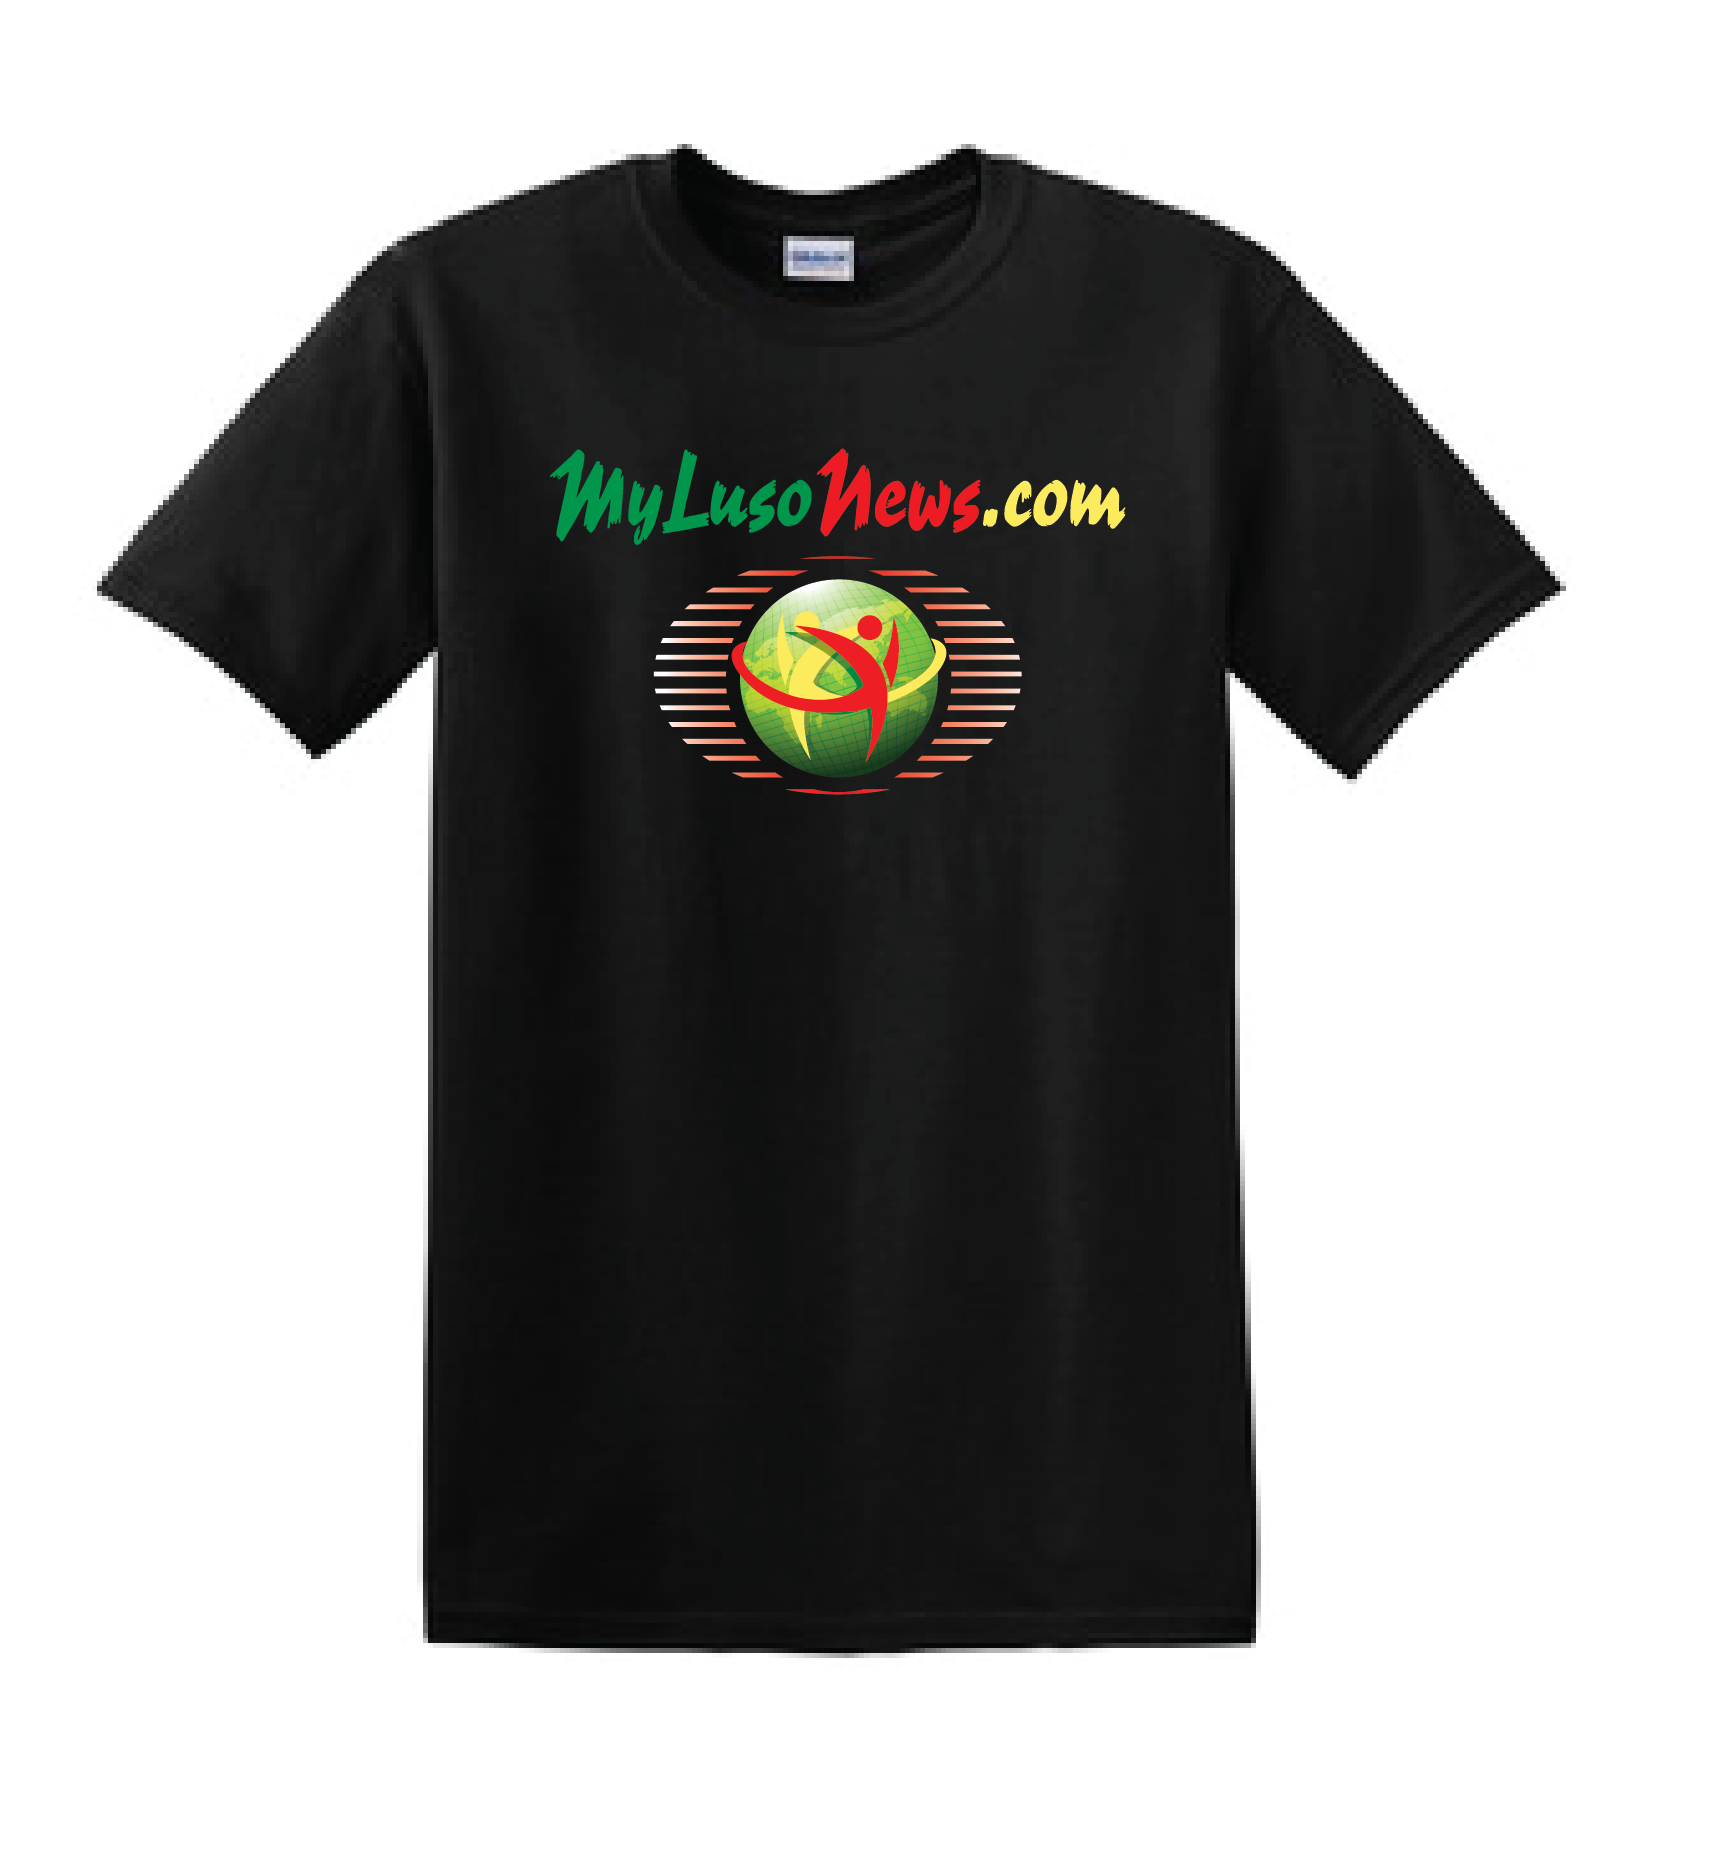 Mylusonews T-shirt